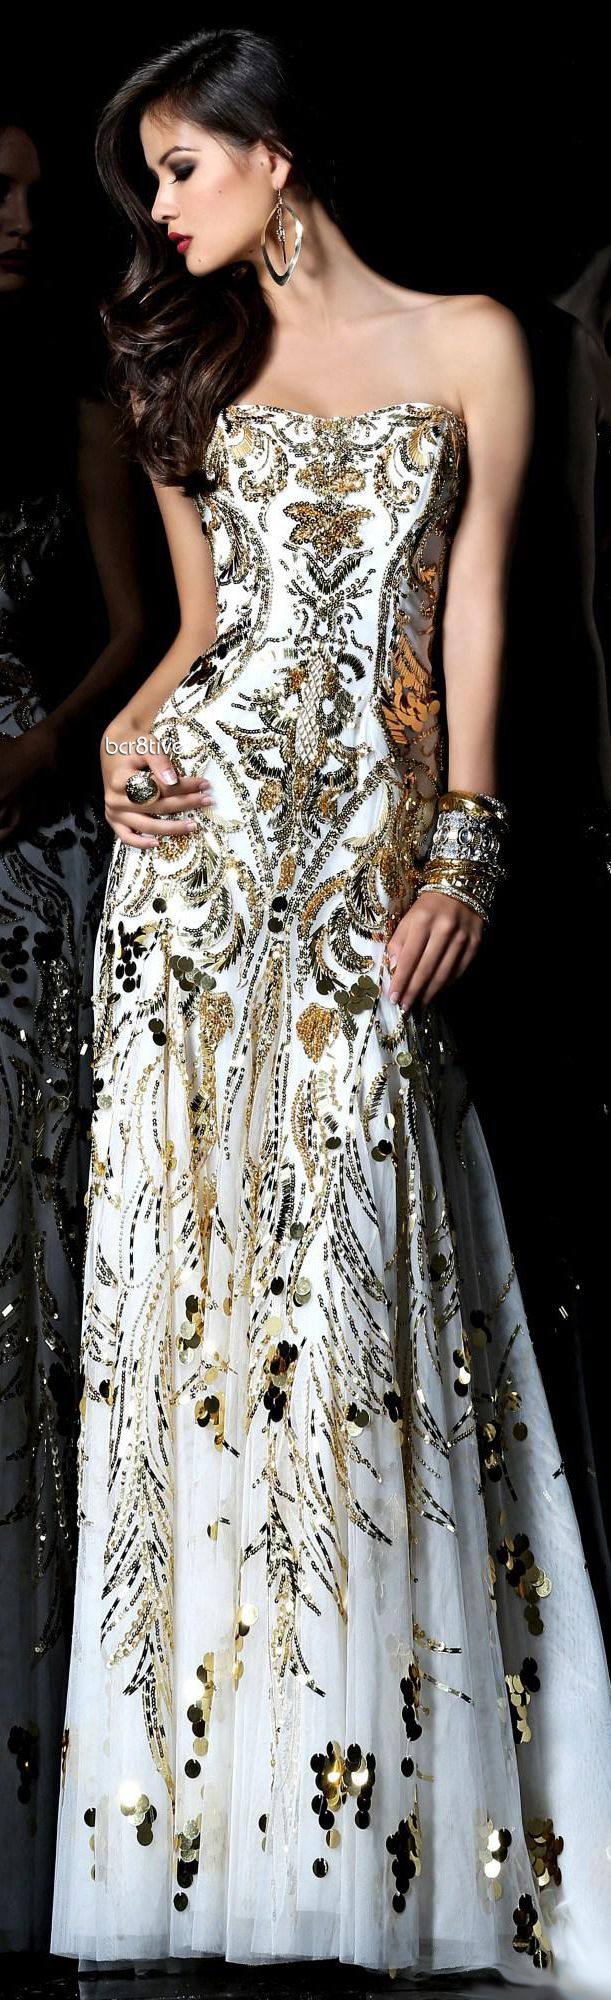 Gorgeous gown.